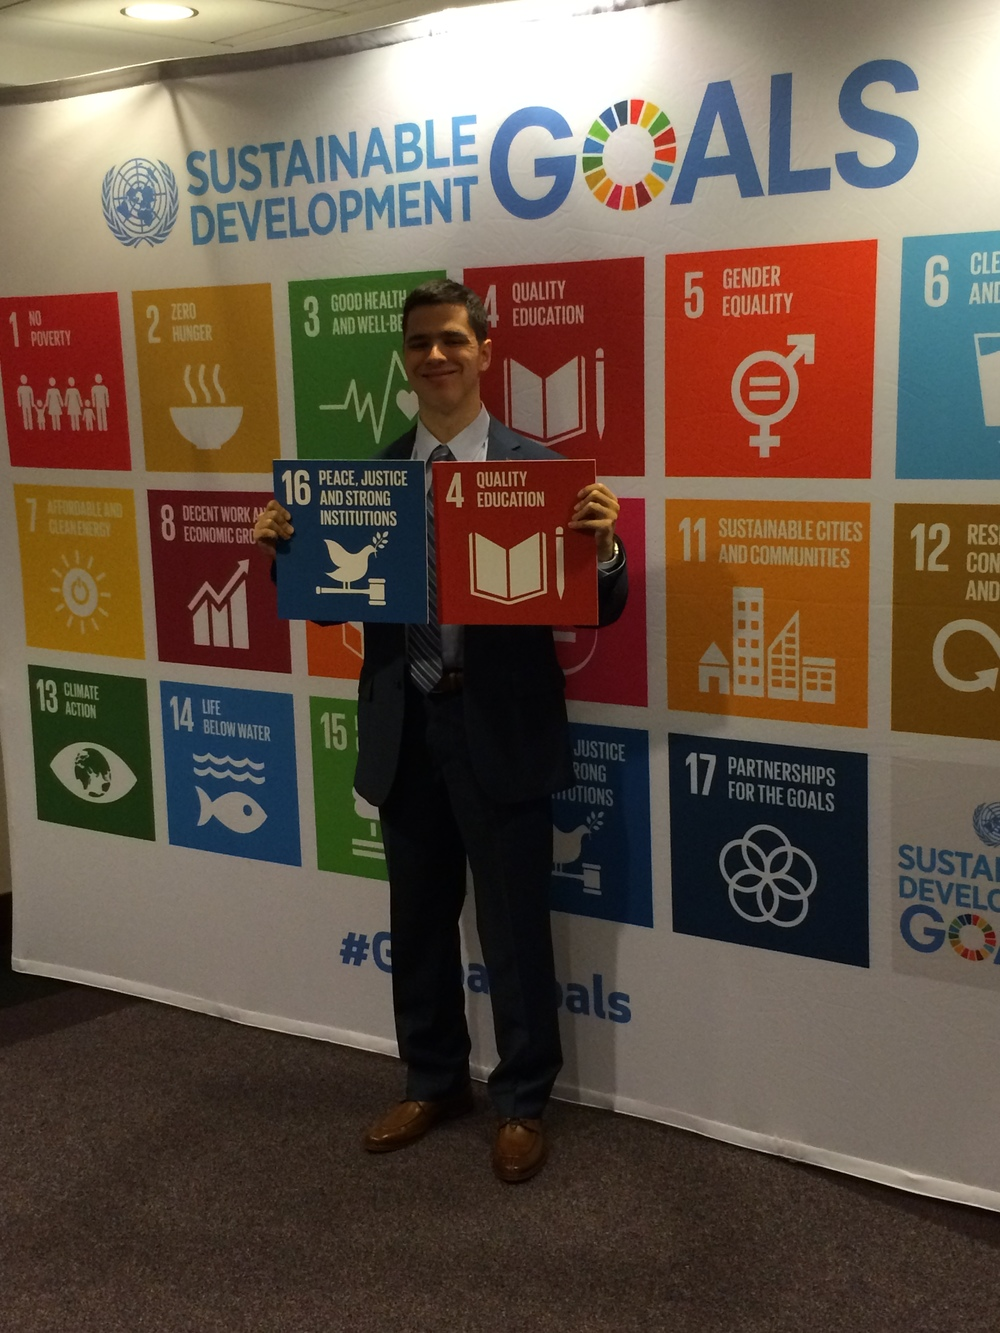 Pierce Lowary holding up his 2 favorite UN Global Goals